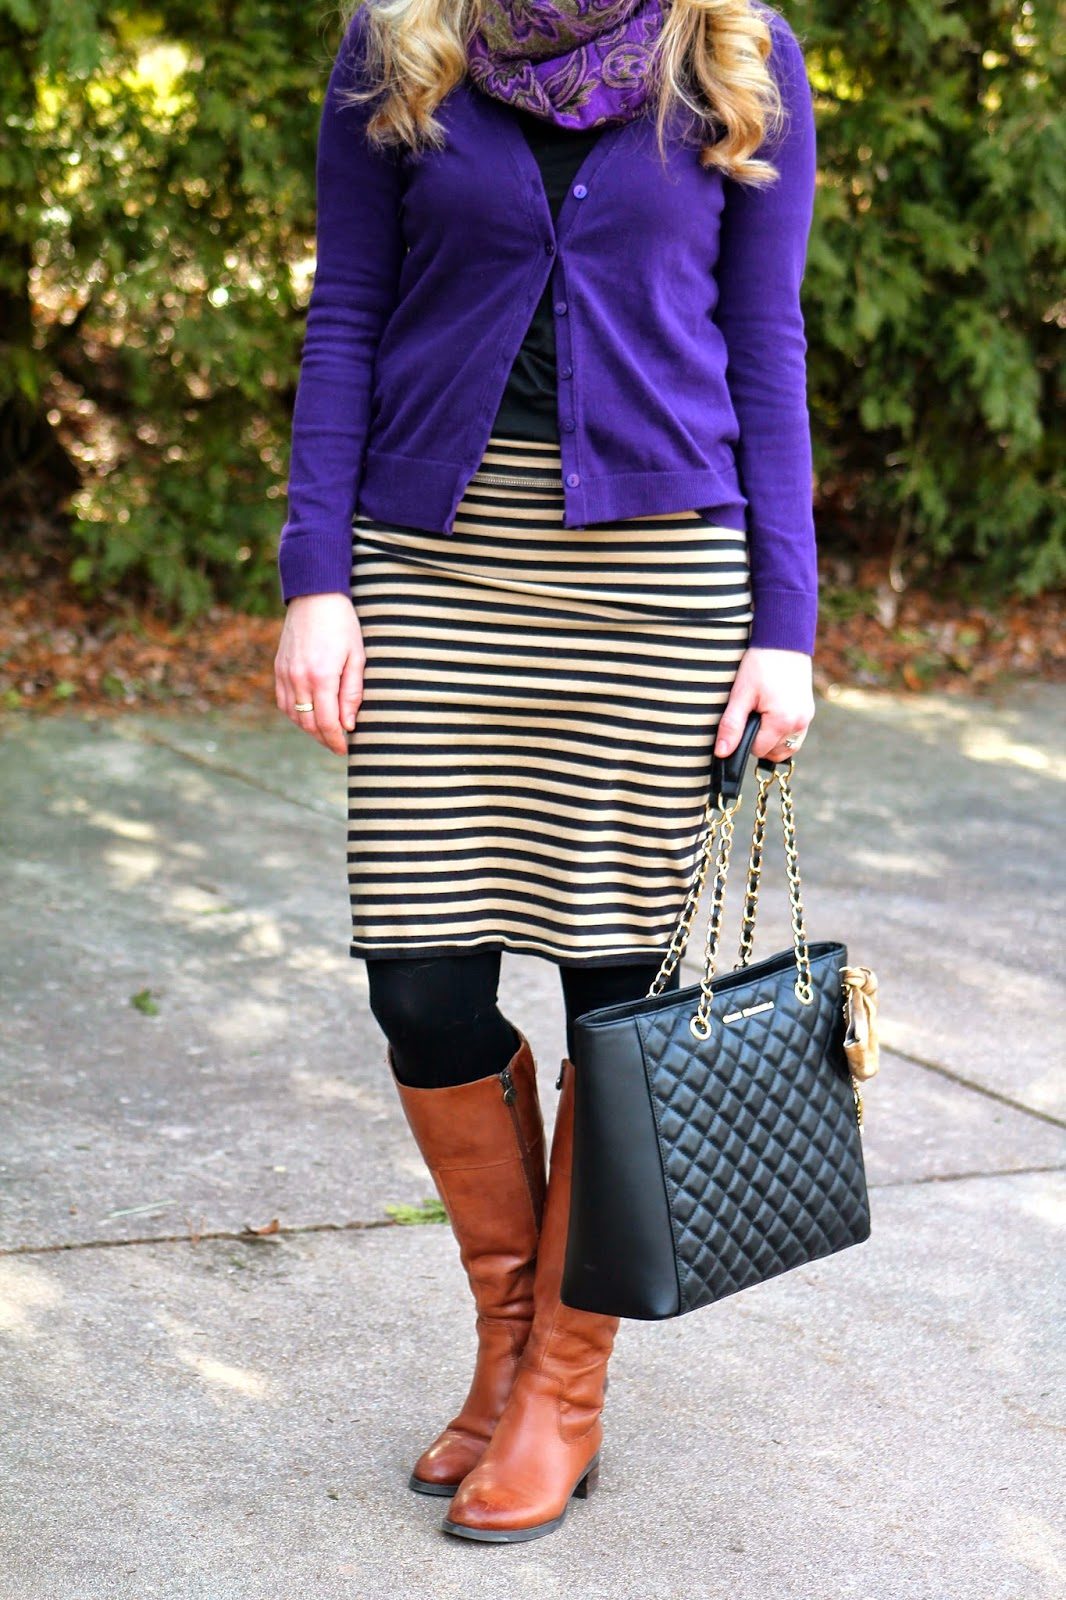 purple cardigan, black camel striped skirt, cognac riding boots, quilted black bag, purple scarf